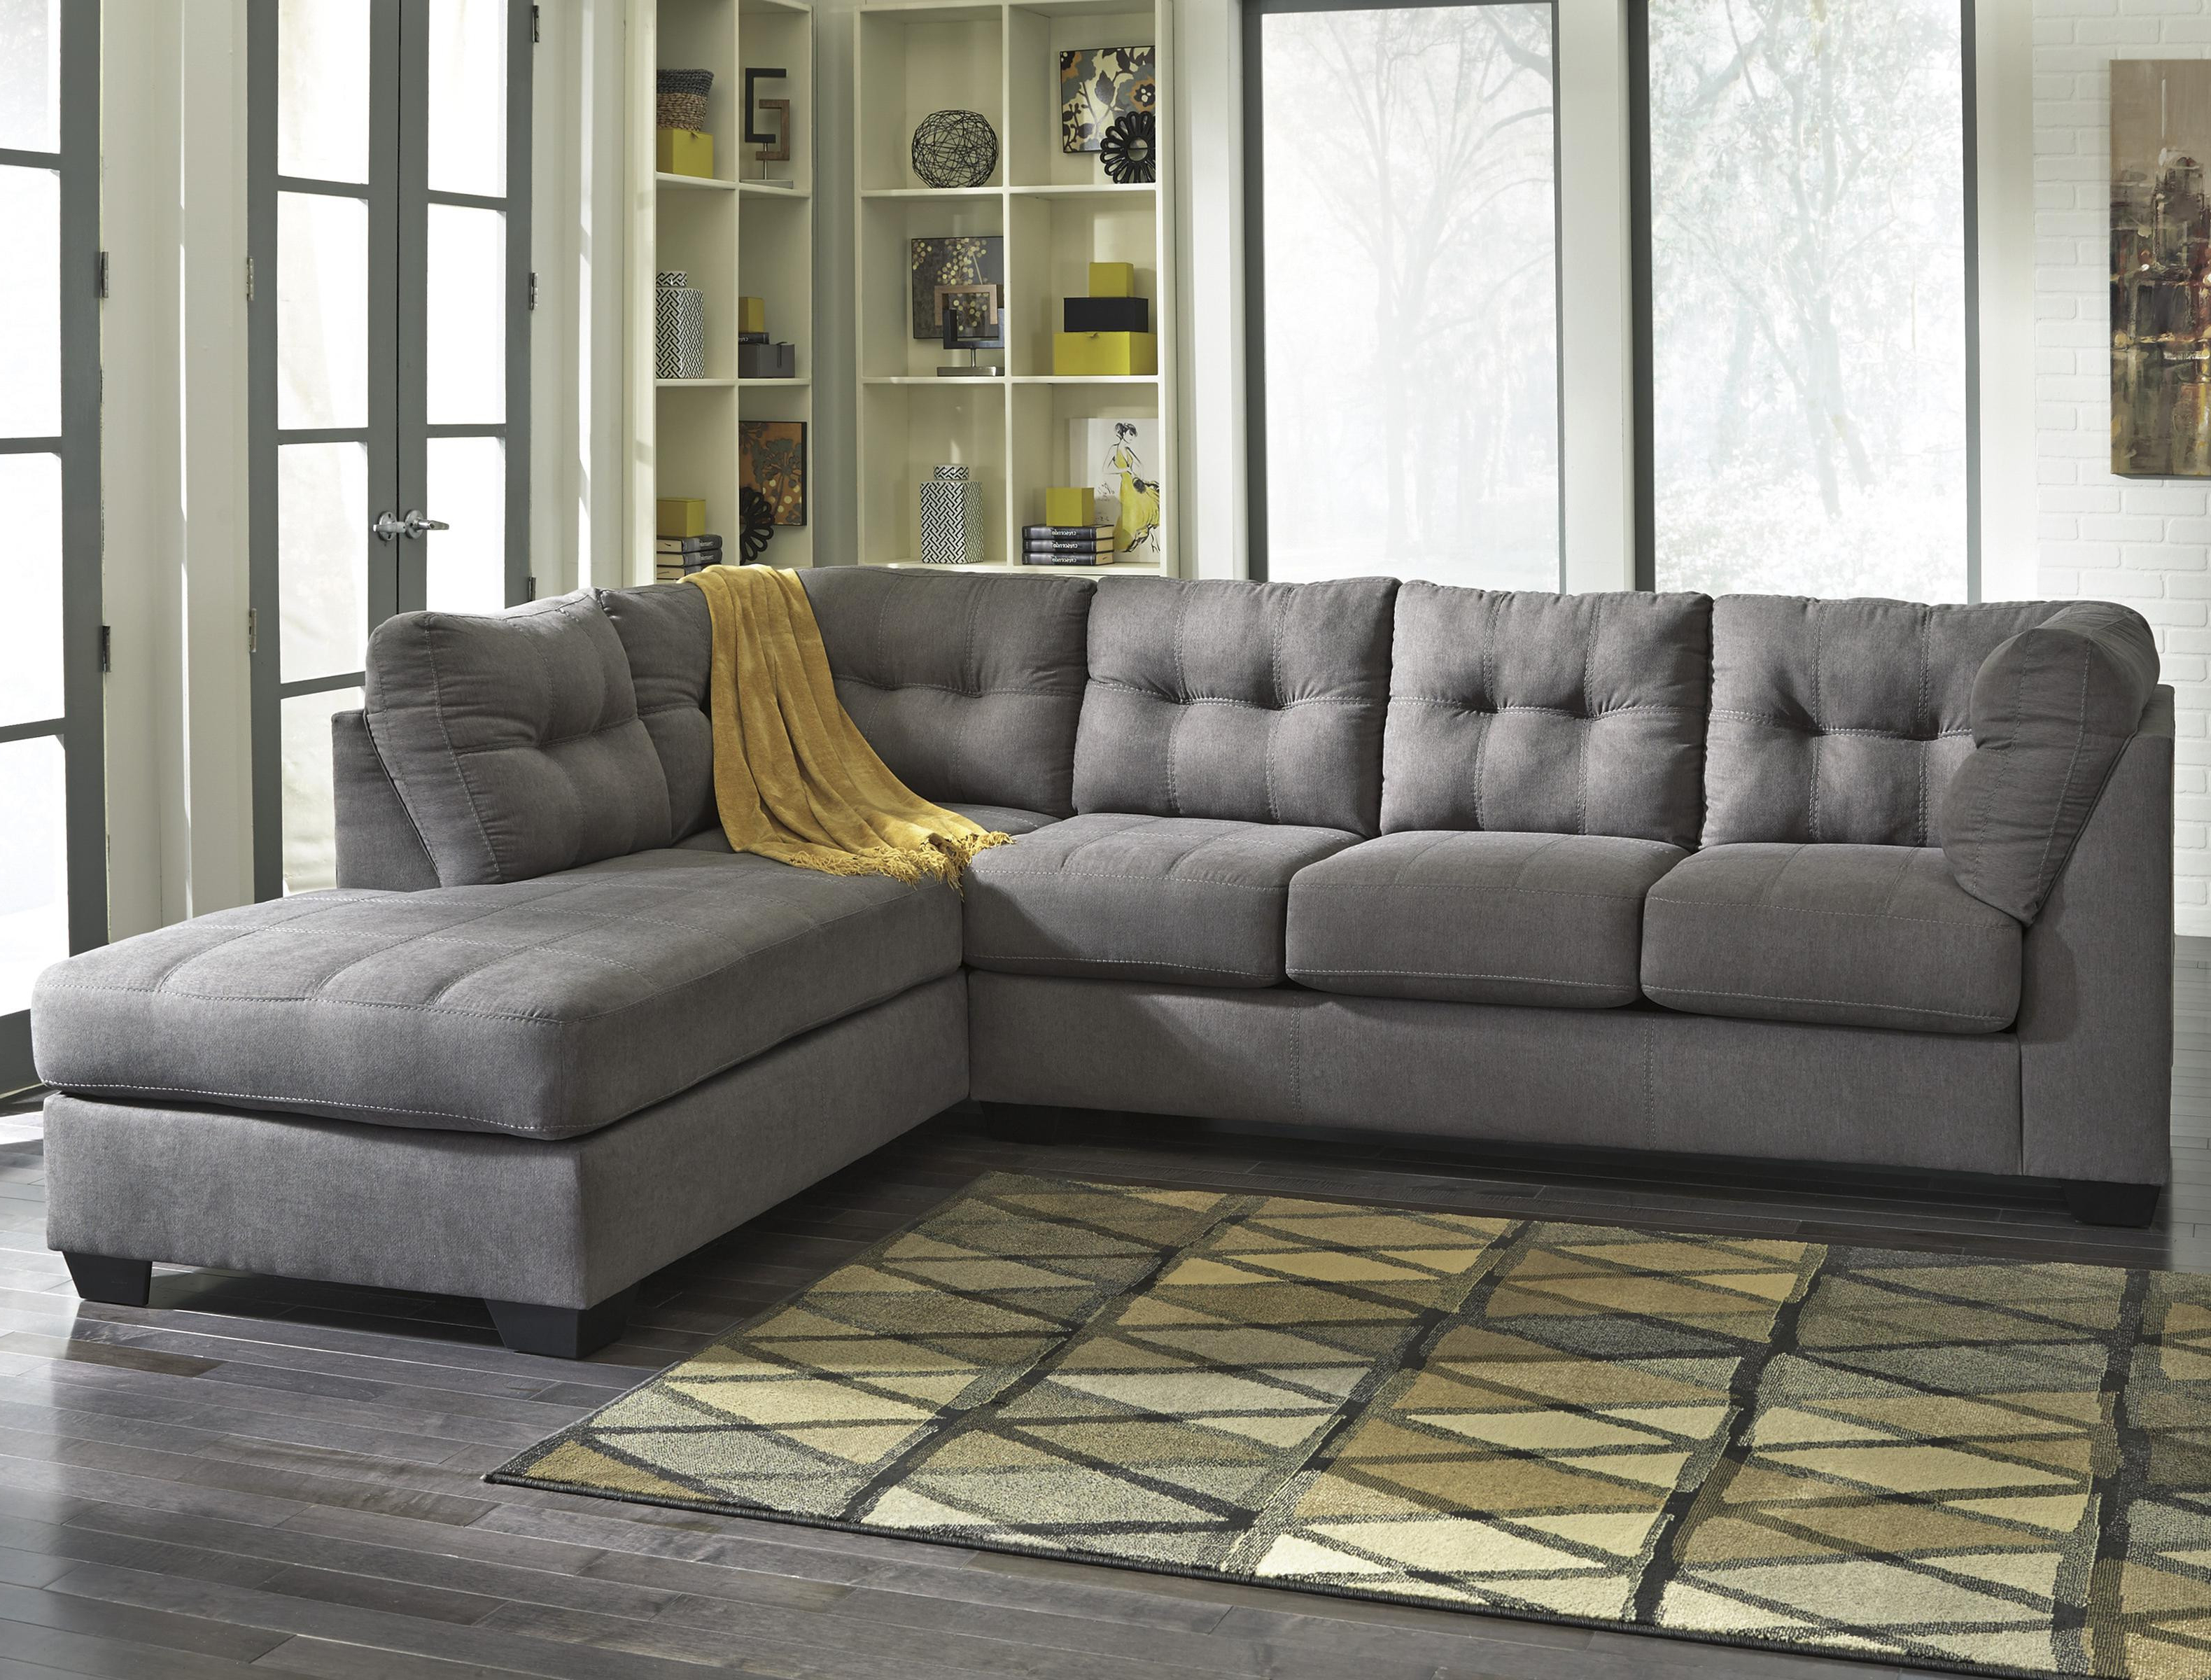 New 2 Piece Sectional With Chaise Lounge – Buildsimplehome Within Fashionable Delano 2 Piece Sectionals With Raf Oversized Chaise (View 18 of 20)